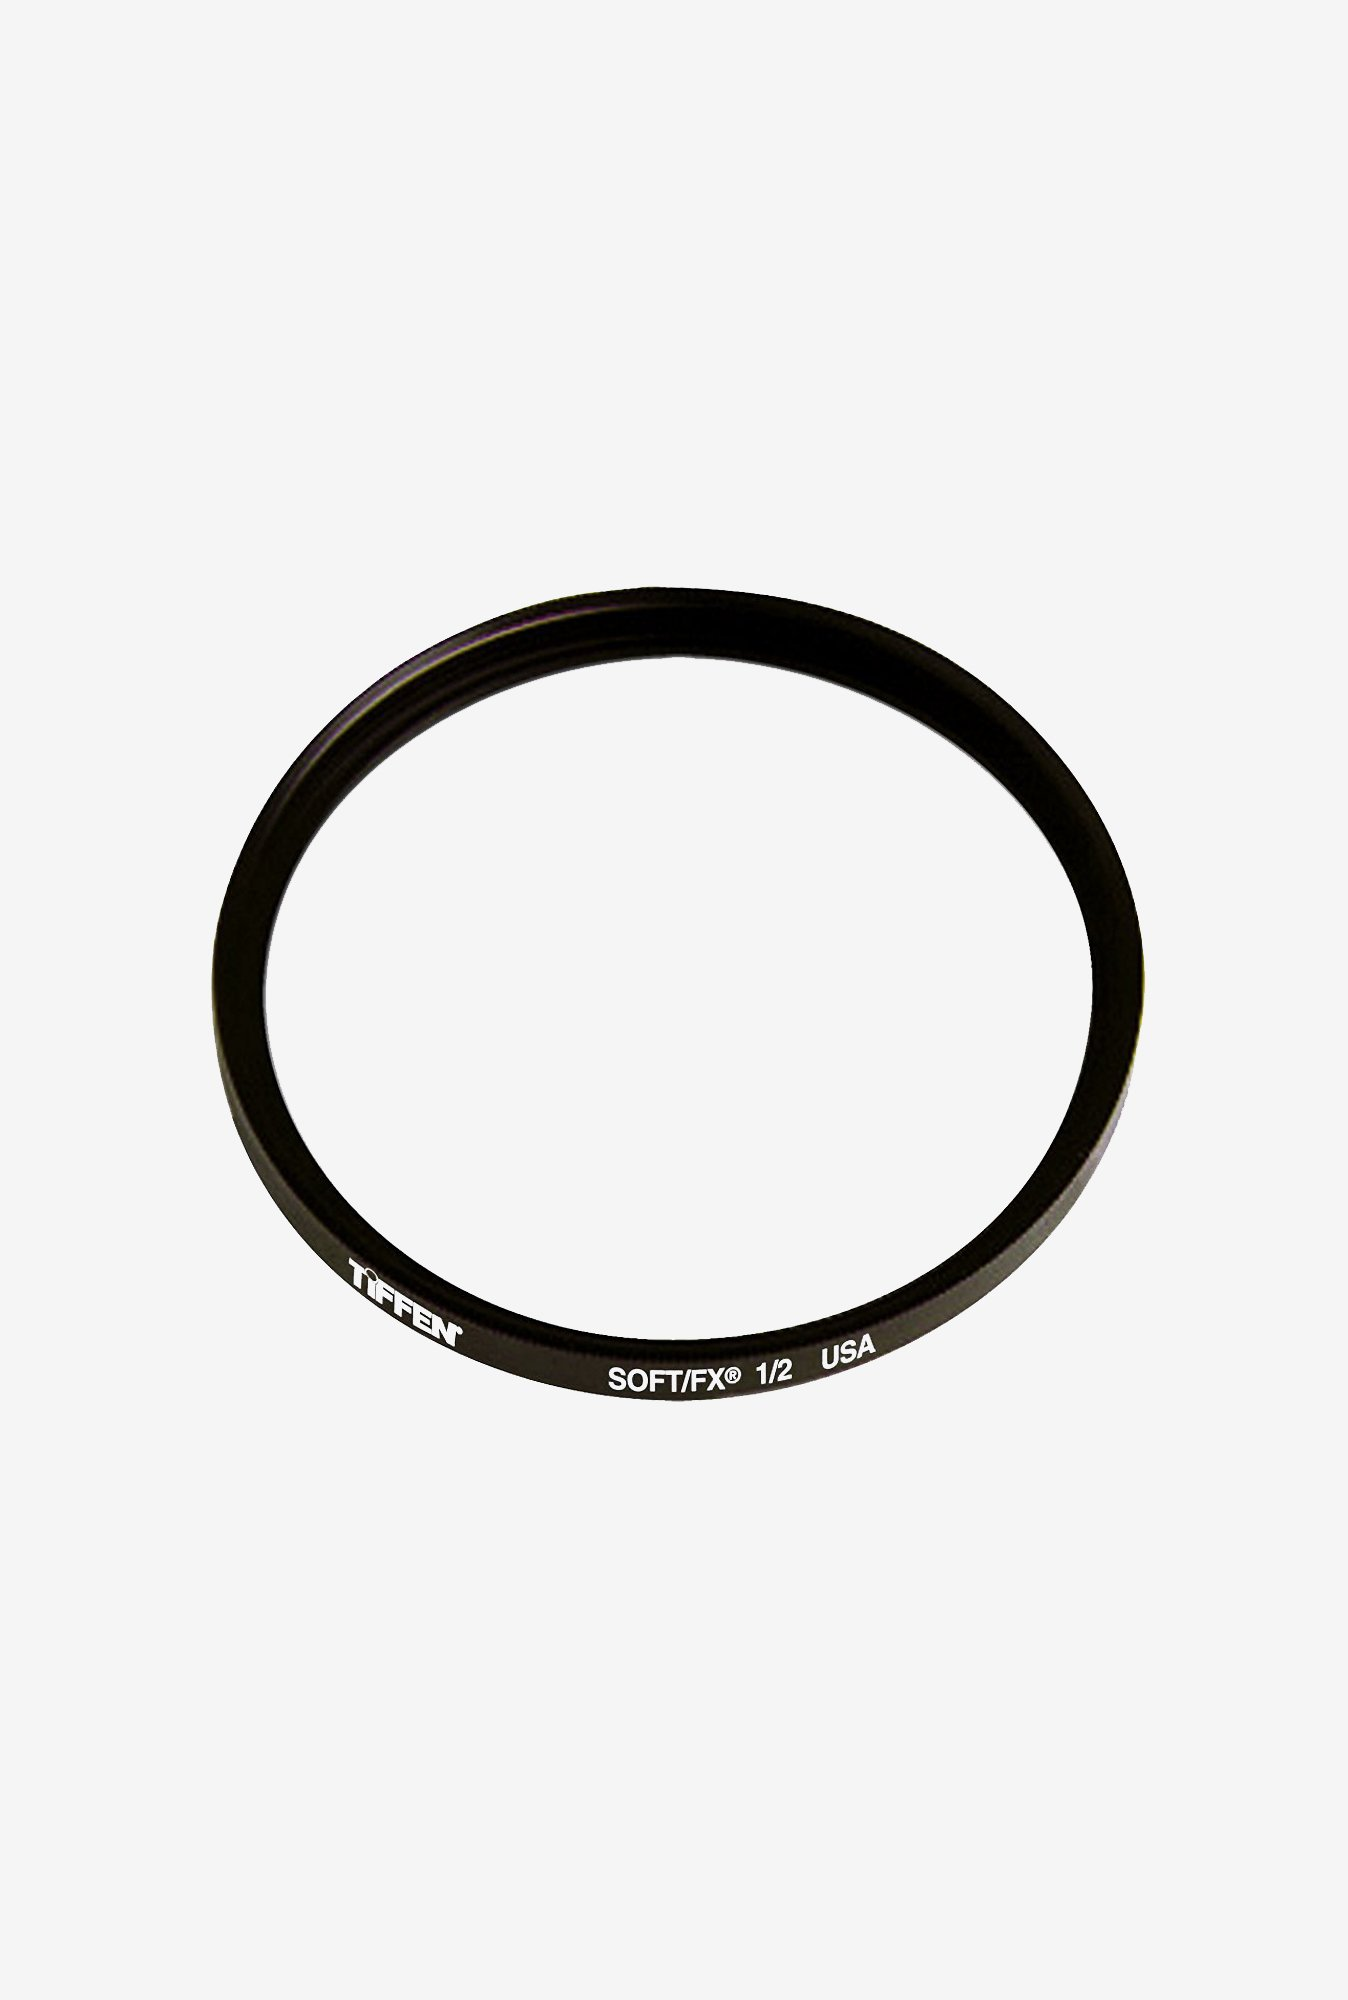 Tiffen 405SFX12 40.5mm Soft/FX 1/2 Filter (Black)